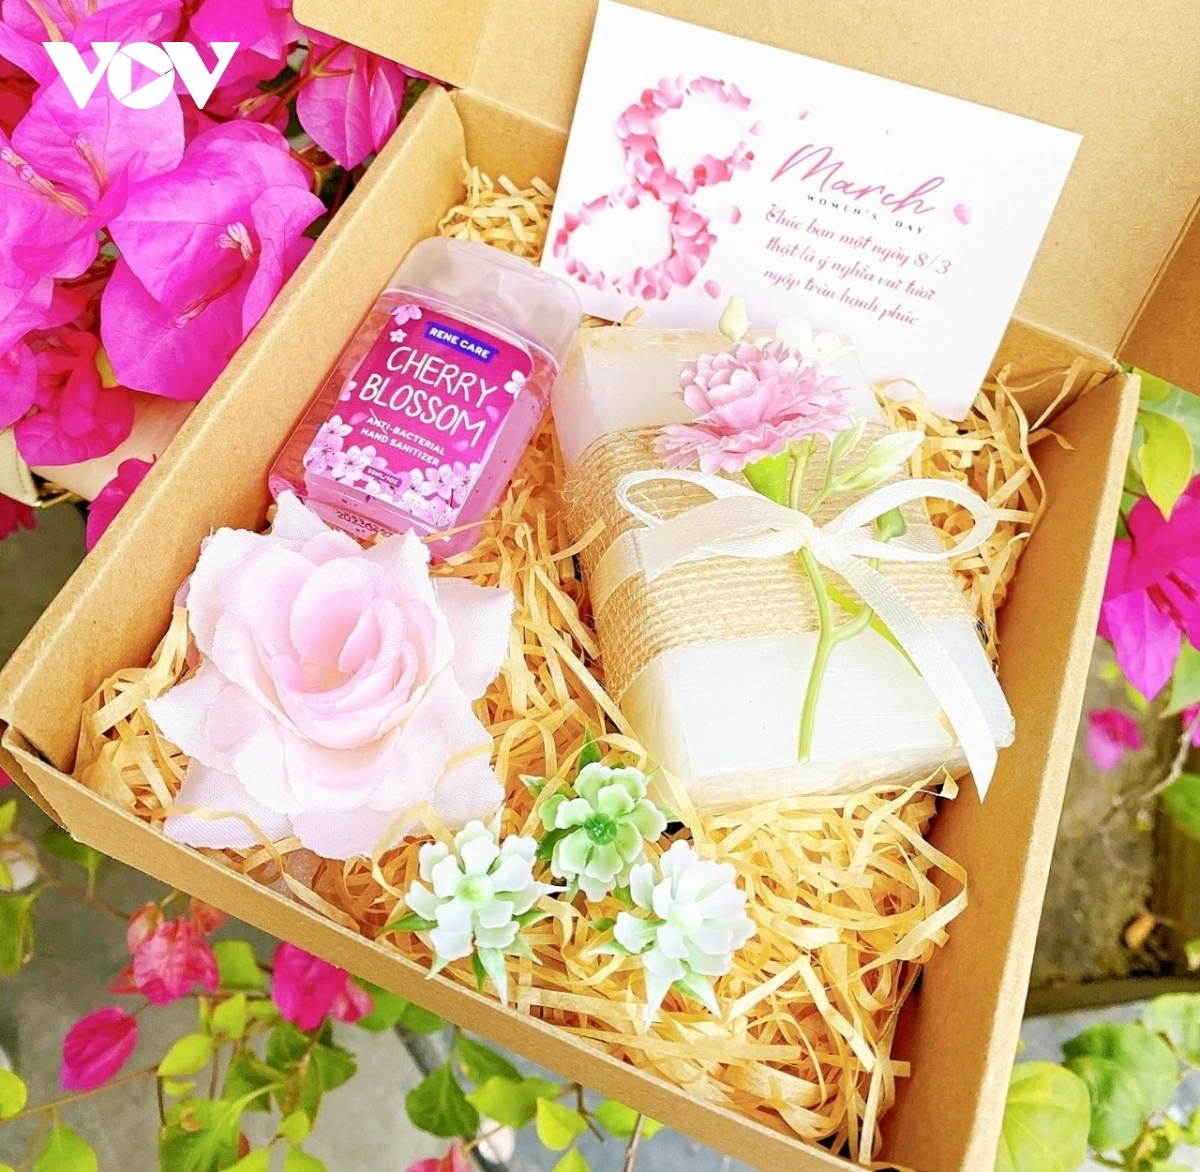 A gift box costs VND450,000 and includes two basic makeup items